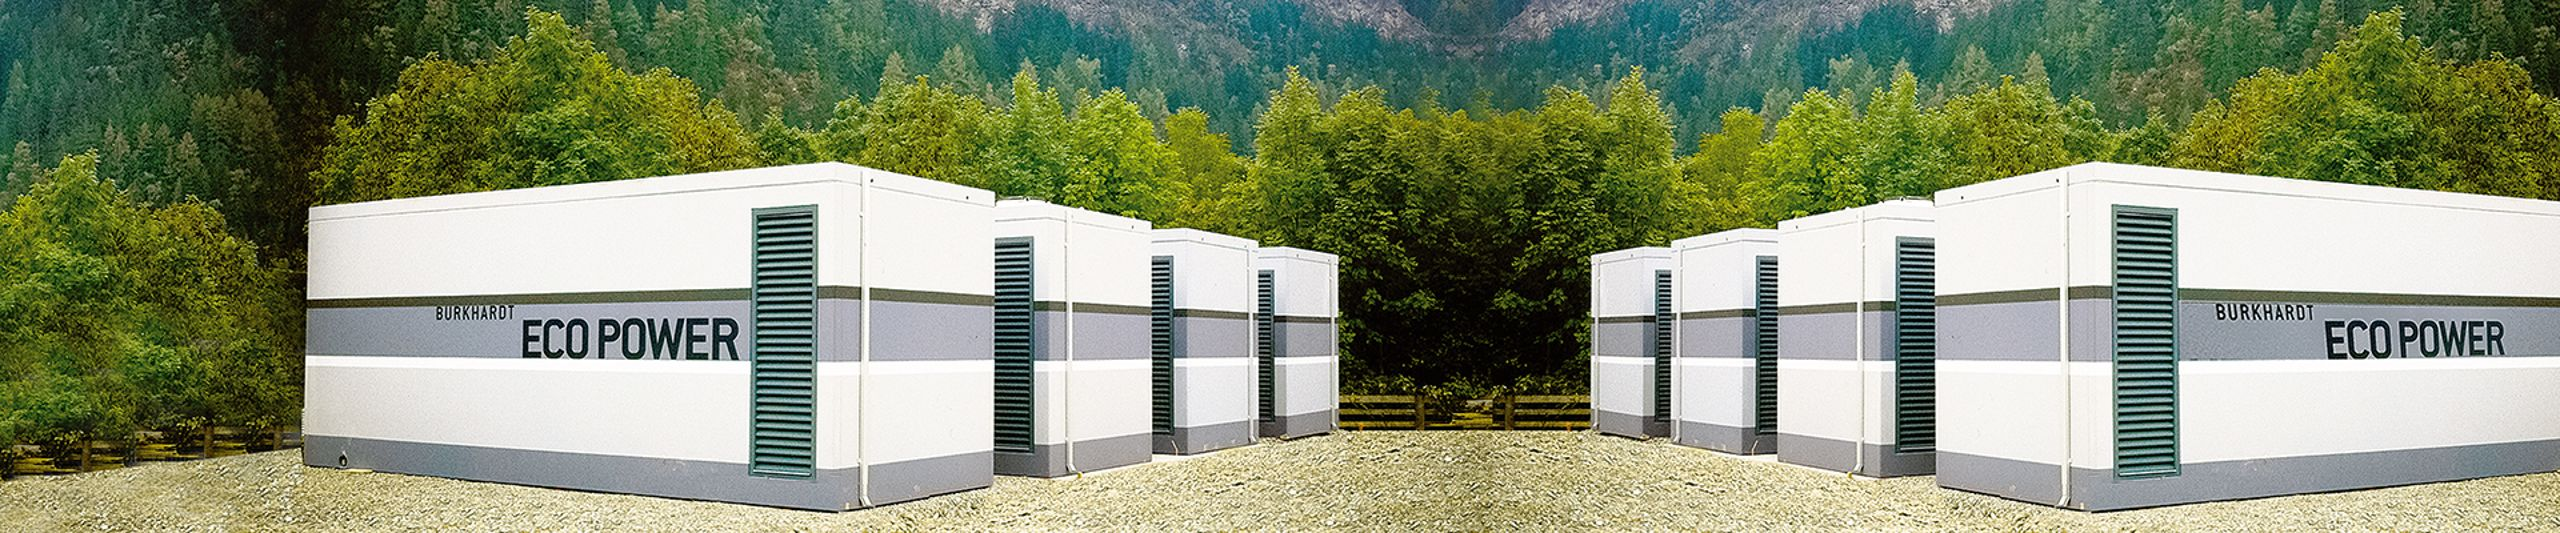 Modular rooms and distribution stations made of concrete